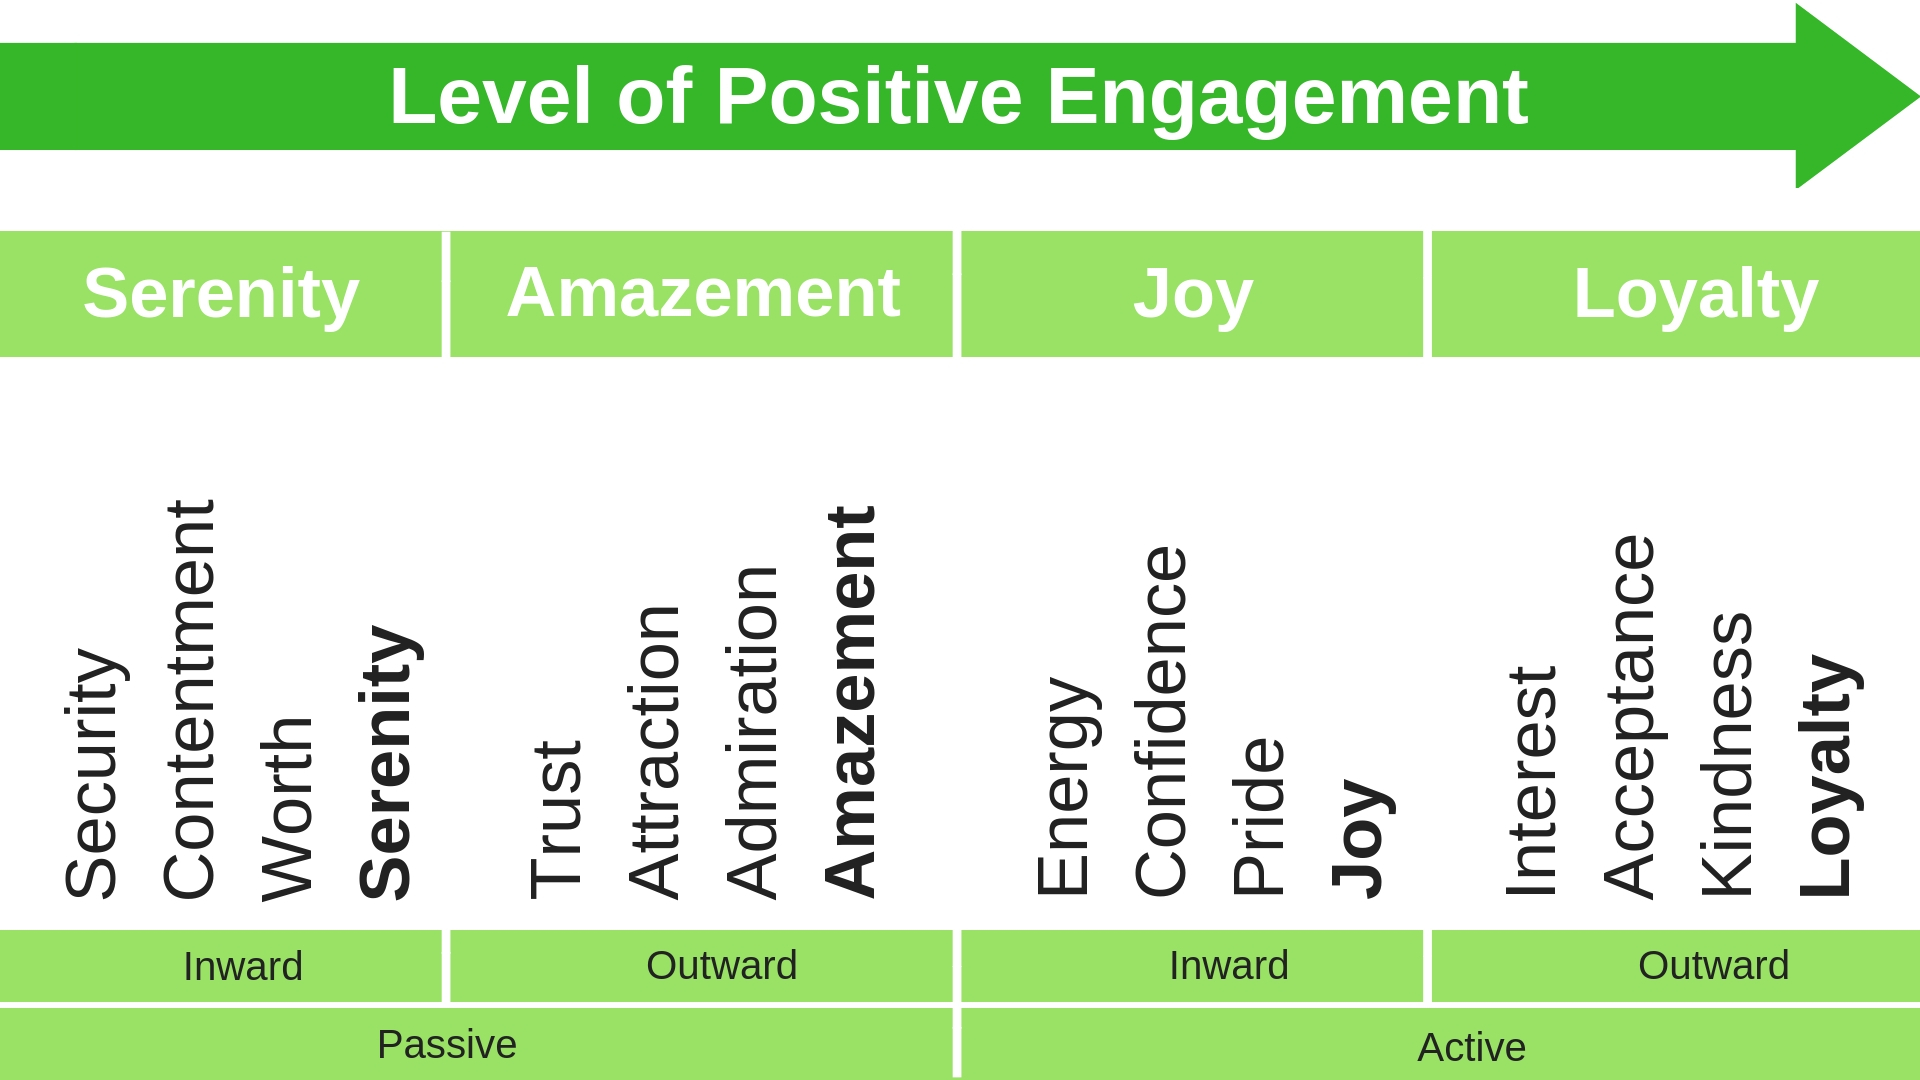 Levels of Positive Engagement